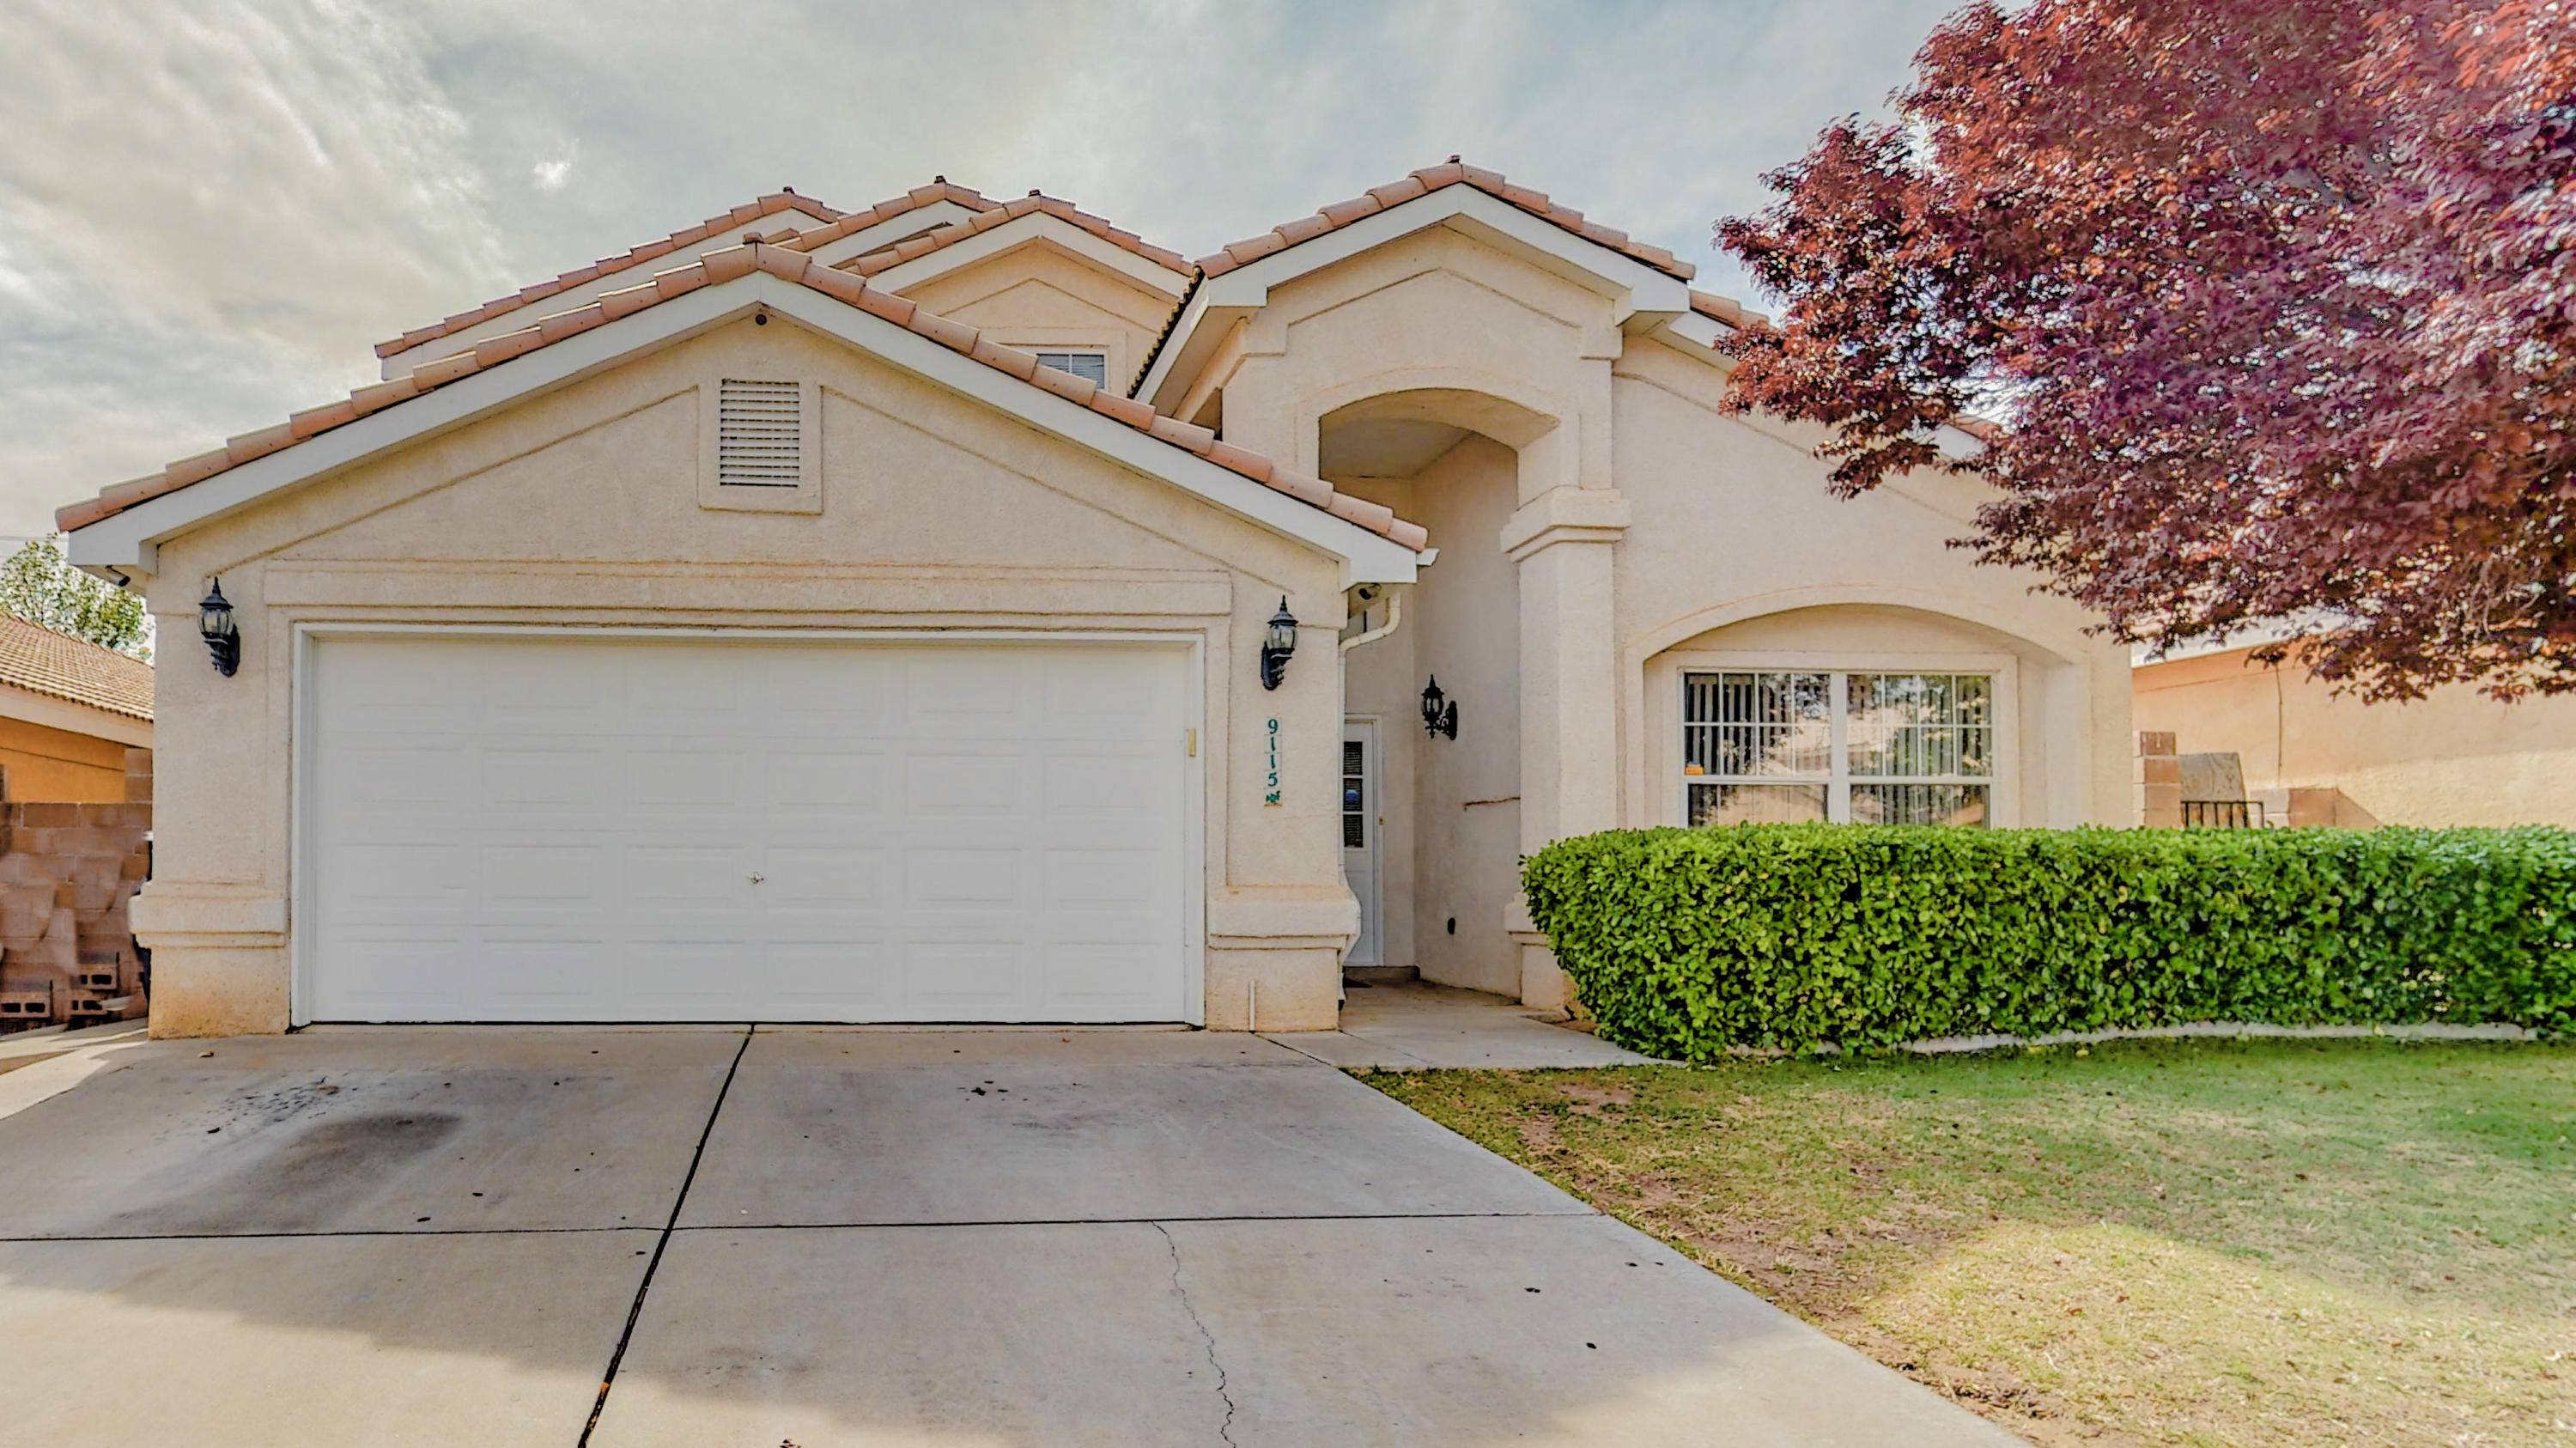 Beautiful 4 bedroom home in highly sought after neighborhood now available!  Home features open floor plan, high ceilings with large living room, master bedroom downstairs, tile roof, REFRIGERATED AIR! No HOA!